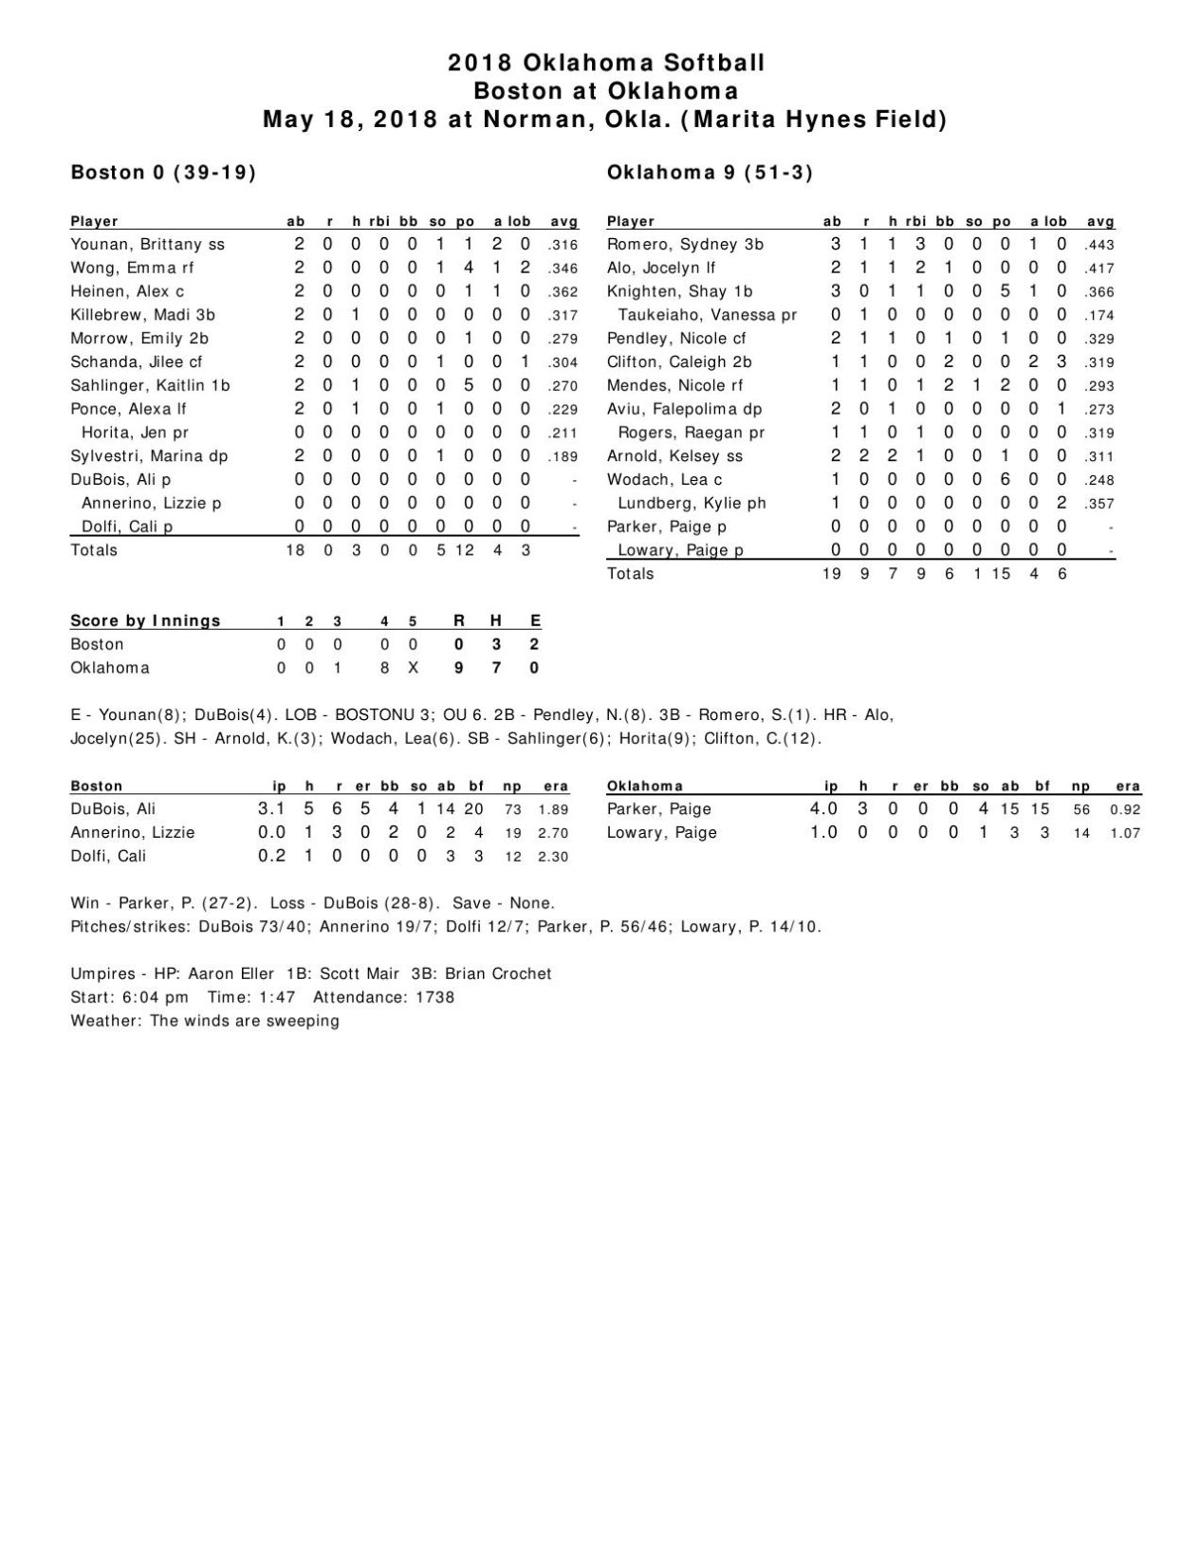 Download PDF Box score: OU 9, BU 0